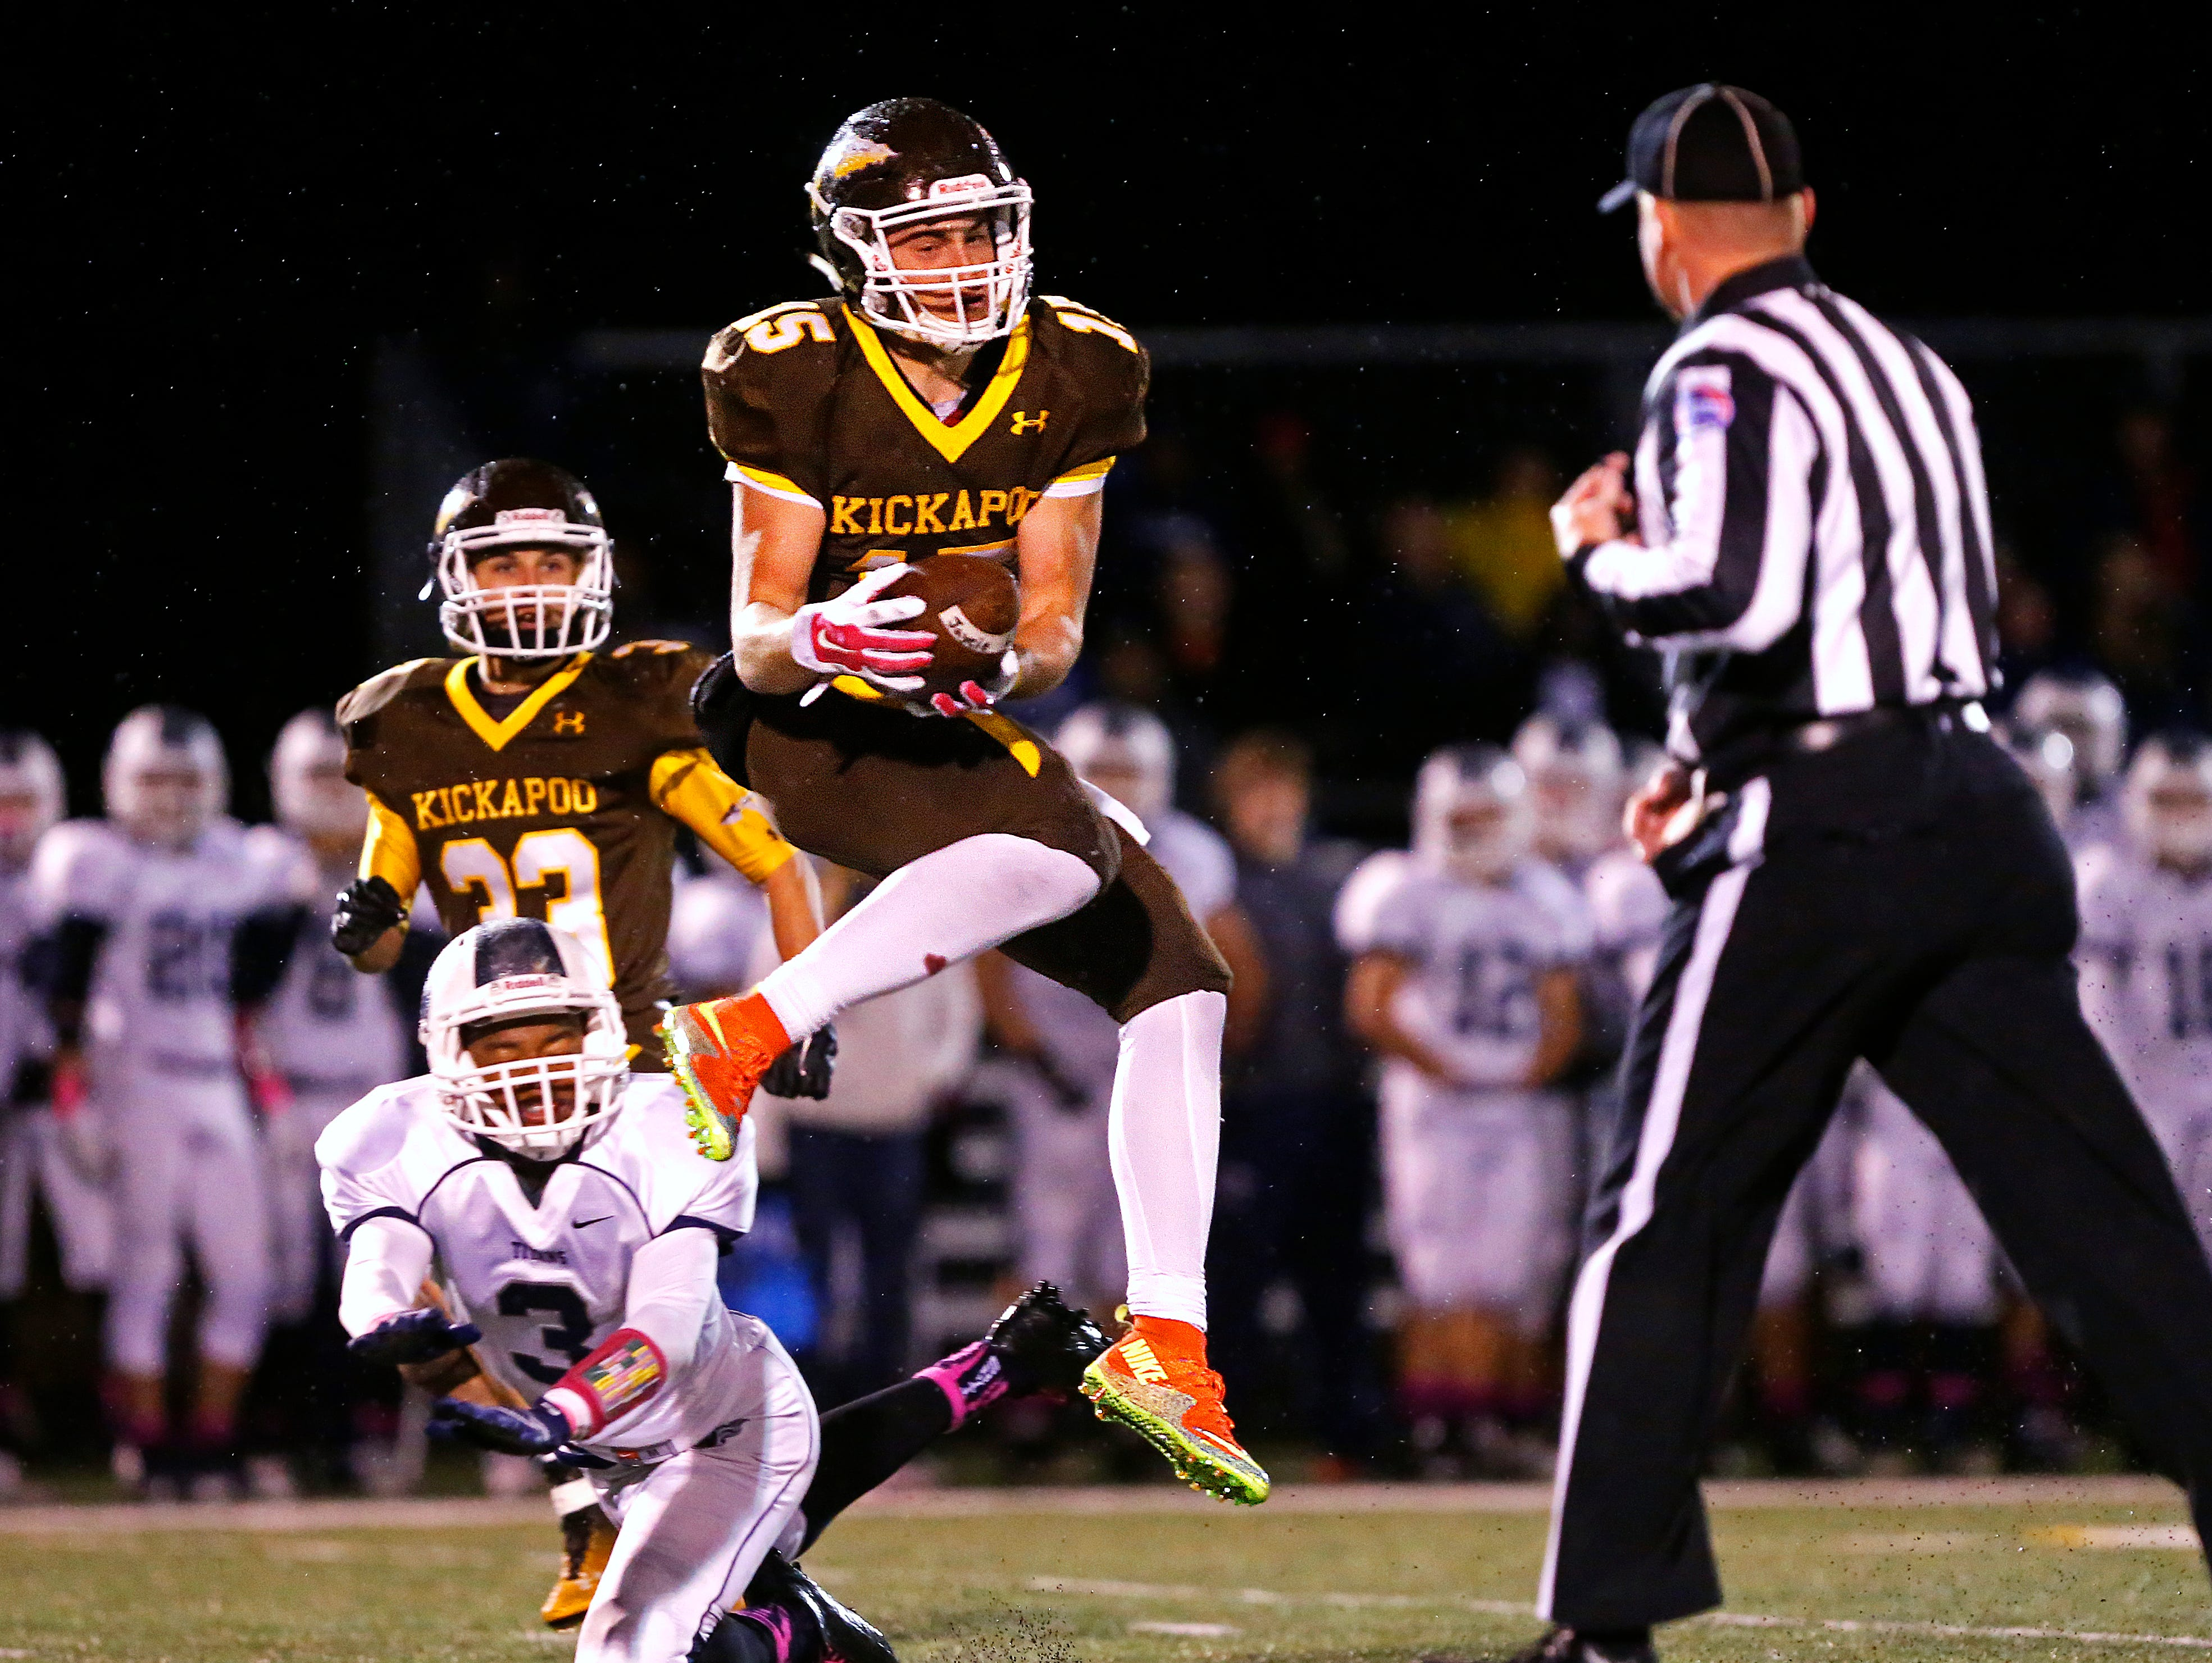 Kickapoo High School safety Mason Pack (15) intercepts a Titans pass during second quarter action of the Chiefs' game against Lee's Summit West High School at Pottenger Stadium in Springfield, Mo. on Oct. 30, 2015. Kickapoo won the game 26-7.